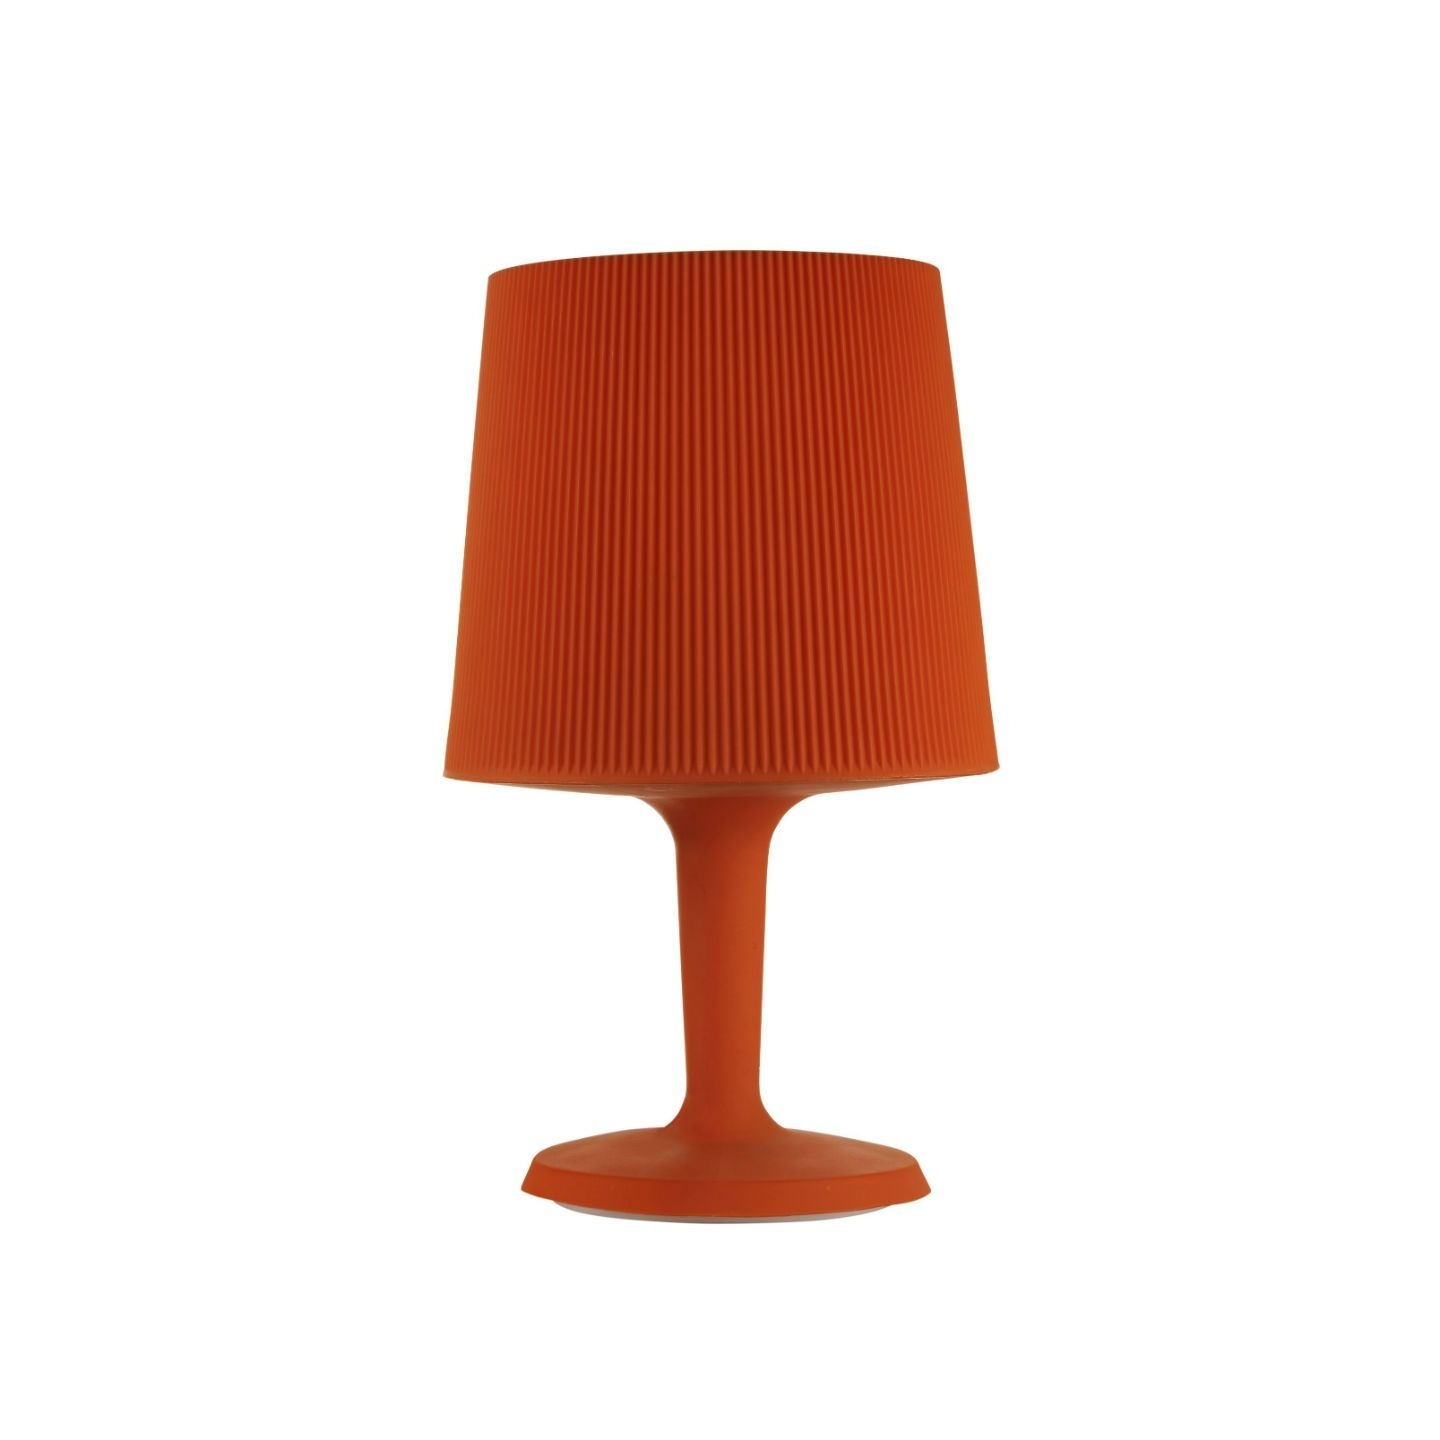 Widely Used Metalarte Inout Table Lamp Small Of Outdoor Red 747800031, Small With Regard To Red Outdoor Table Lanterns (View 20 of 20)